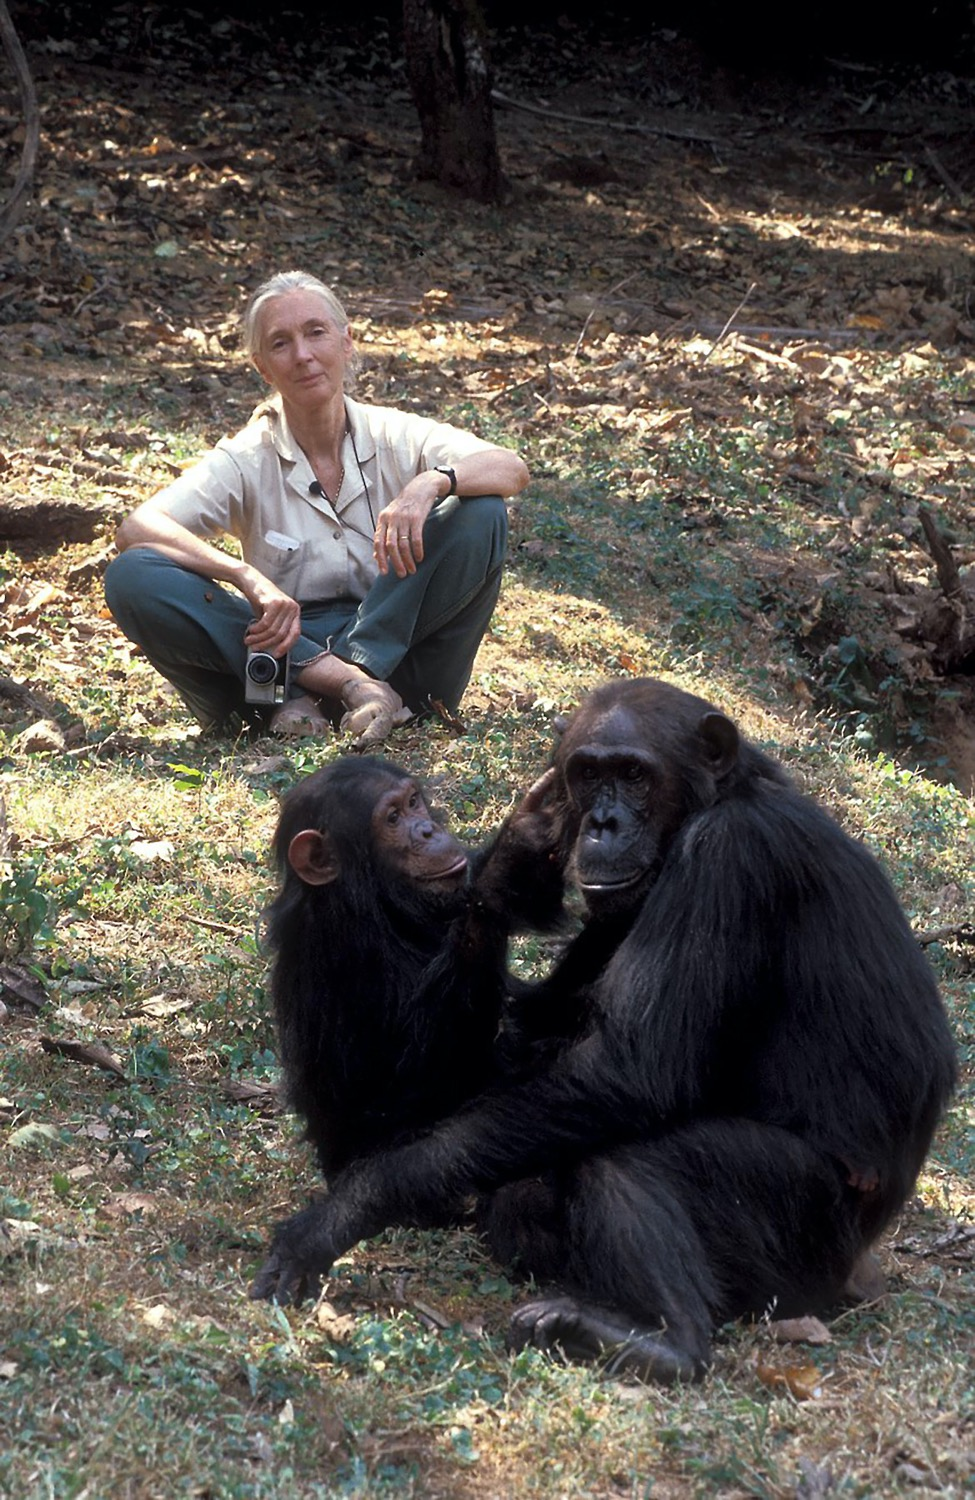 an older woman sits crossed legged looking at two chimps interacting